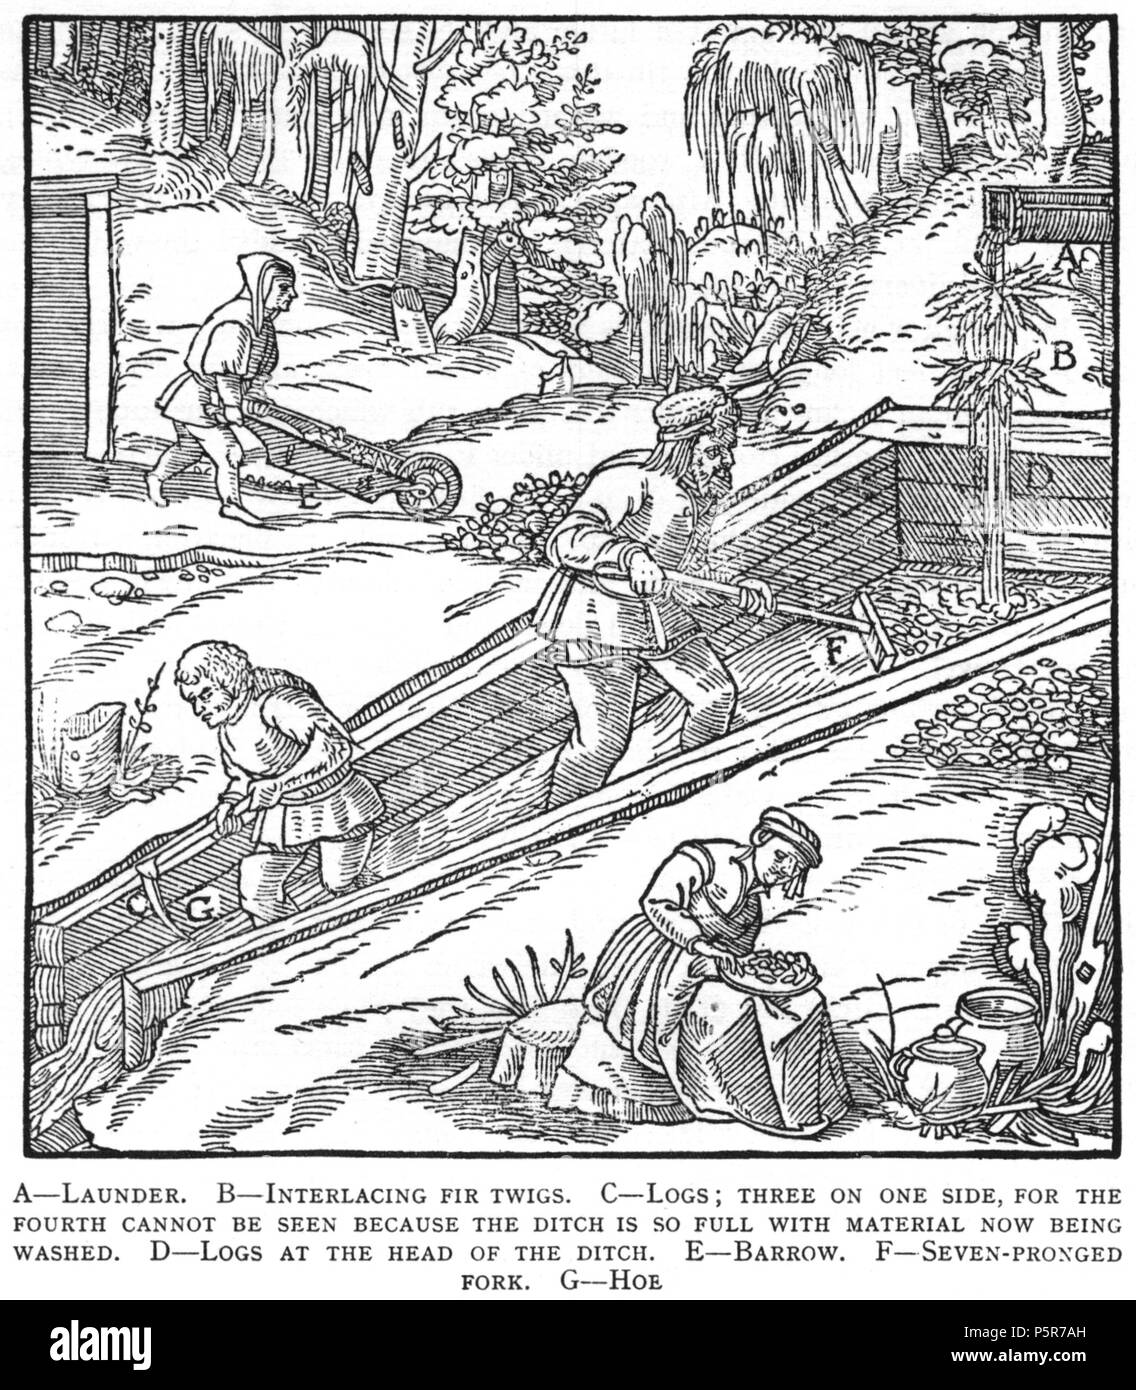 N/A. Woodcut illustration from De re metallica by Georgius Agricola. This is a 300dpi scan from the 1950 Dover edition of the 1913 Hoover translation of the 1556 reference. The Dover edition has slightly smaller size prints than the Hoover (which is a rare book). The woodcuts were recreated for the 1913 printing. Filenames (except for the title page) indicate the chapter (2, 3, 5, etc.) followed by the sequential number of the illustration. 2 May 2005, 07:13:28. TCO (talk) 223 Book8-55 - Stock Image